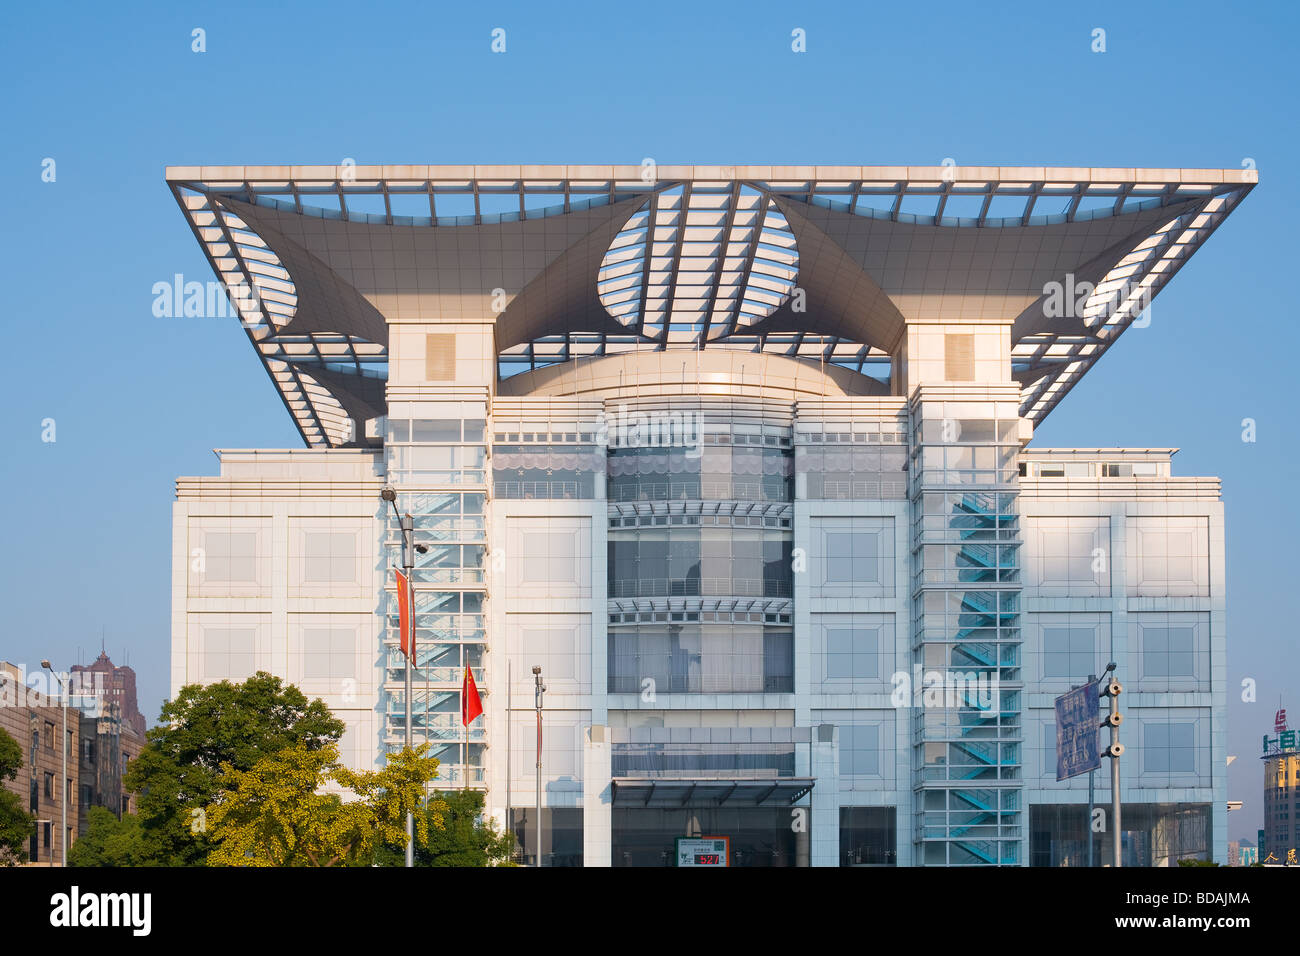 Shanghai Urban Planning Exhibition Center Renmin Park People s Square Huangpu district Shanghai China Asia Stock Photo